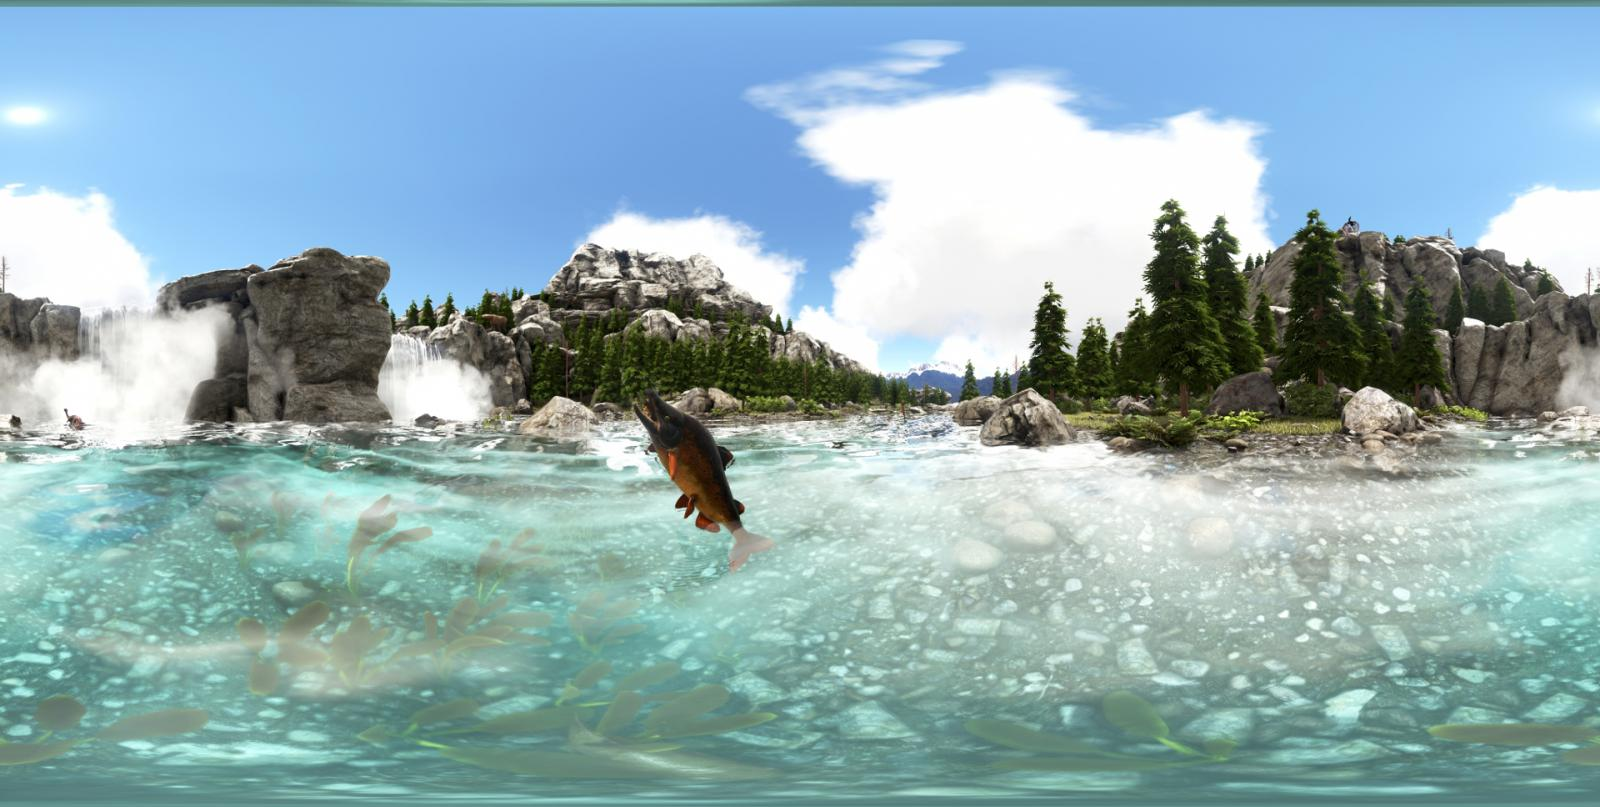 large.58e84836992d9_FataL1ty-FlyingFish2-Panoramic360Stereoscopic3Dsta.jpg